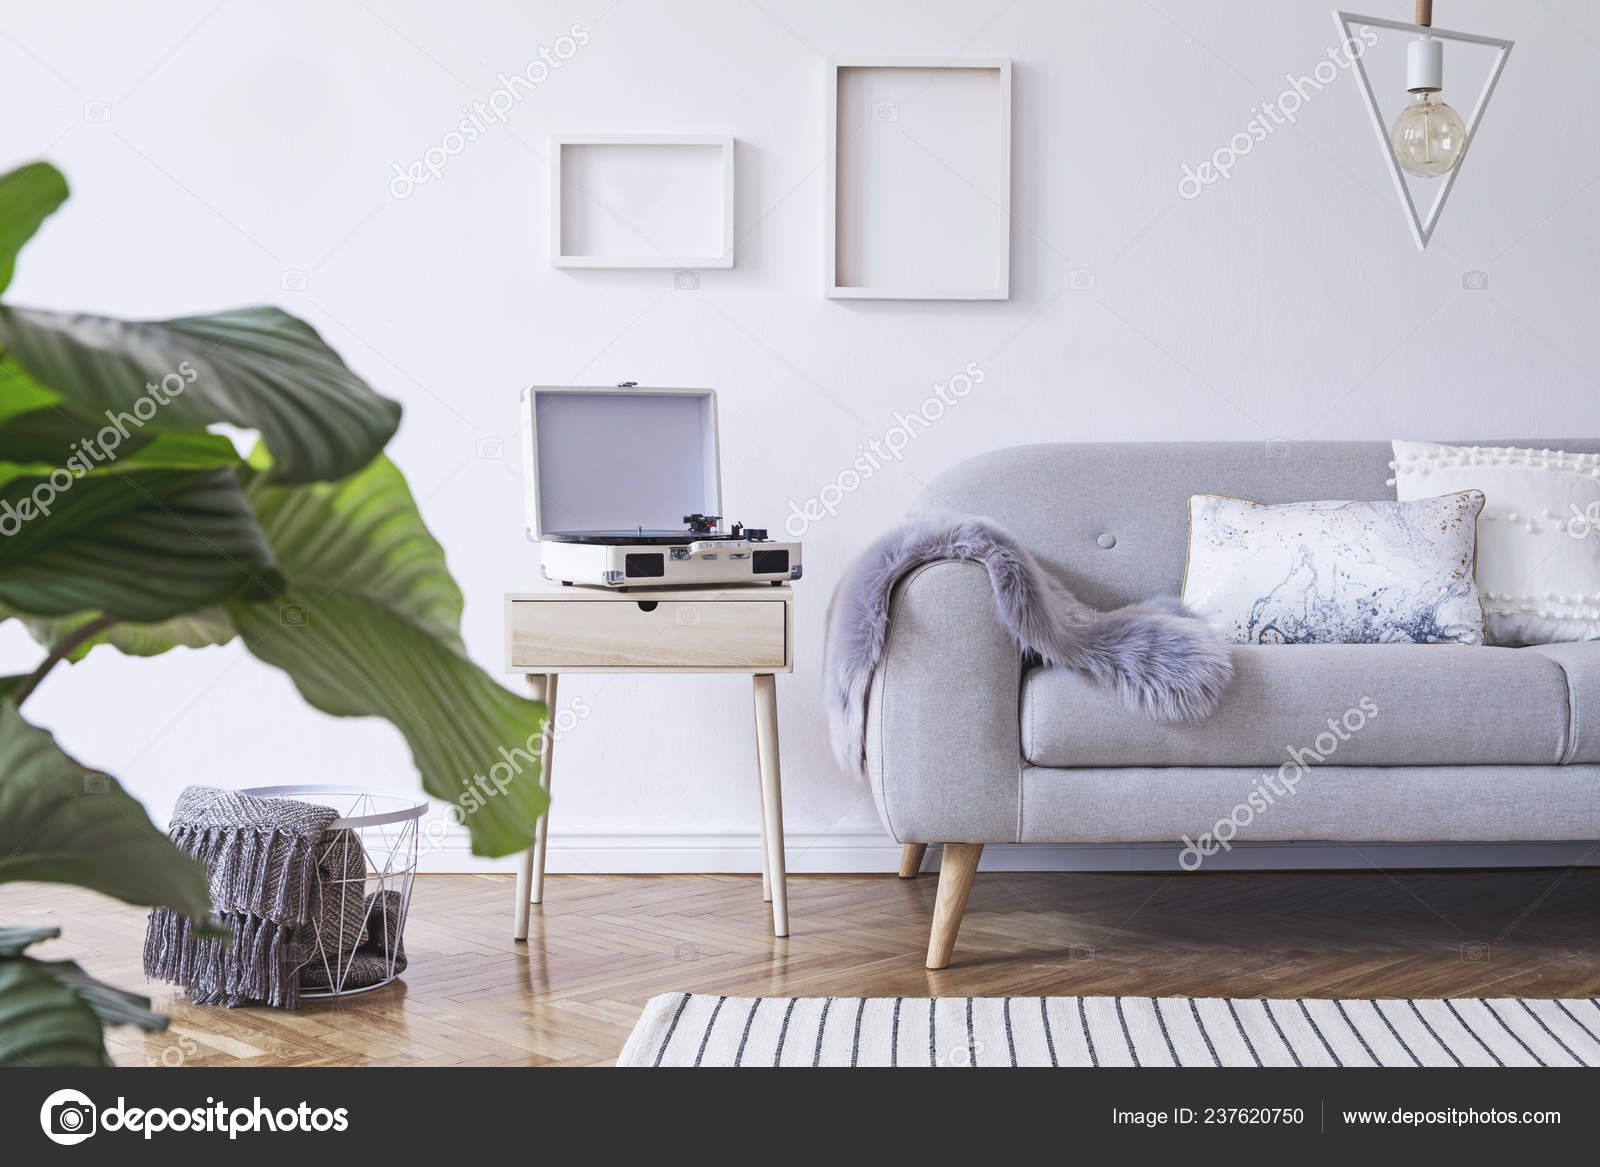 Partial View Light Living Room Grey Sofa Scandinavian Style Stock Photo C Followtheflow 237620750